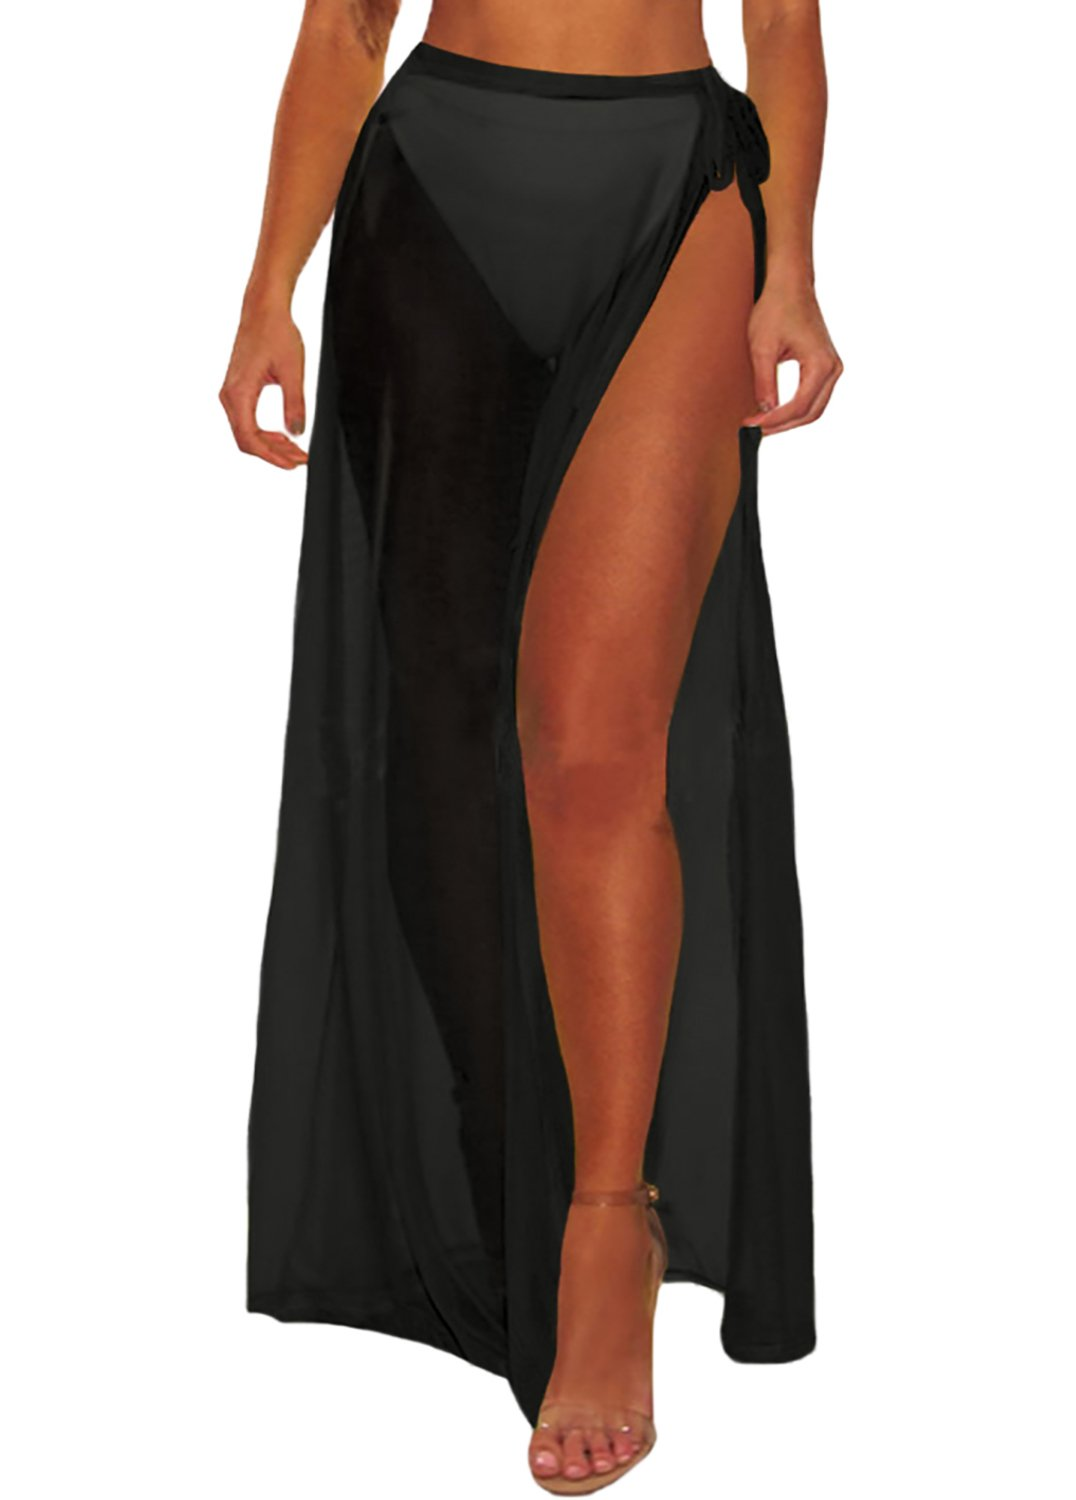 Bulawoo Women's Sexy Sheer Skirt Solid Cover up Swimsuit Beach Sarongs Wrap Maxi Skirt Swimwear Bathing Suits One Size Black